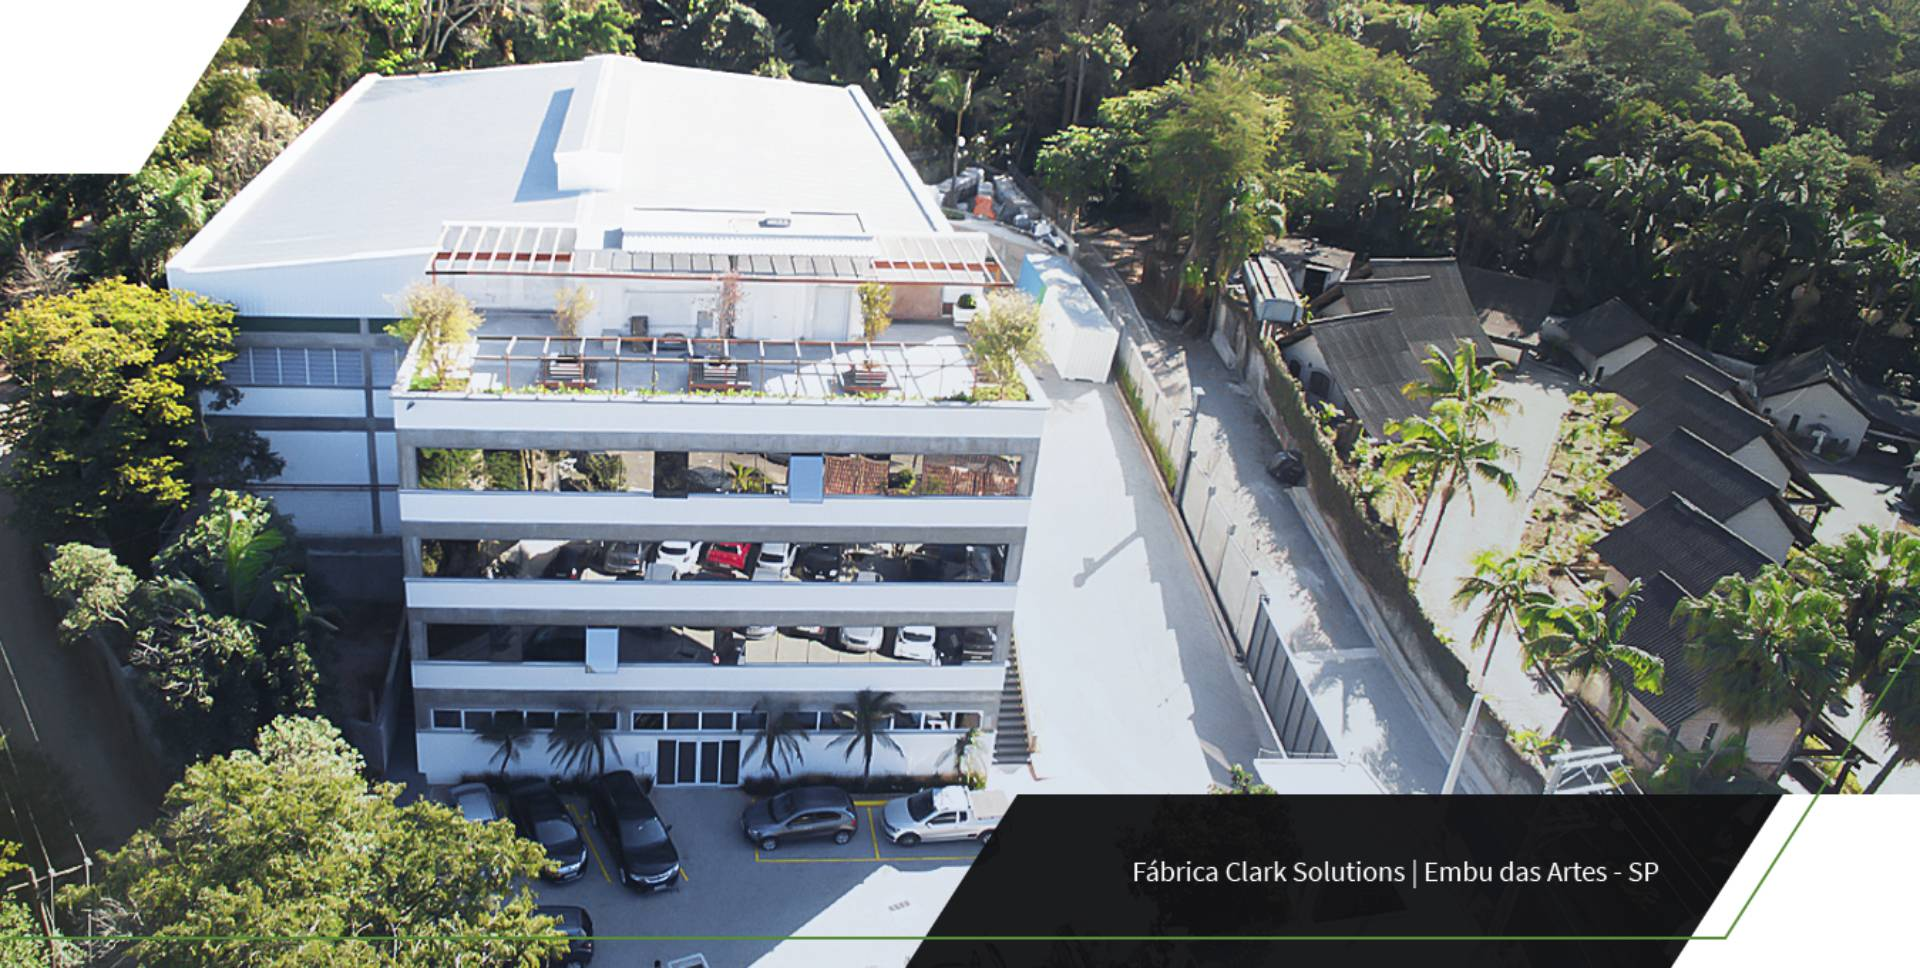 Factory Clark Soluction | Embu das Artes - SP